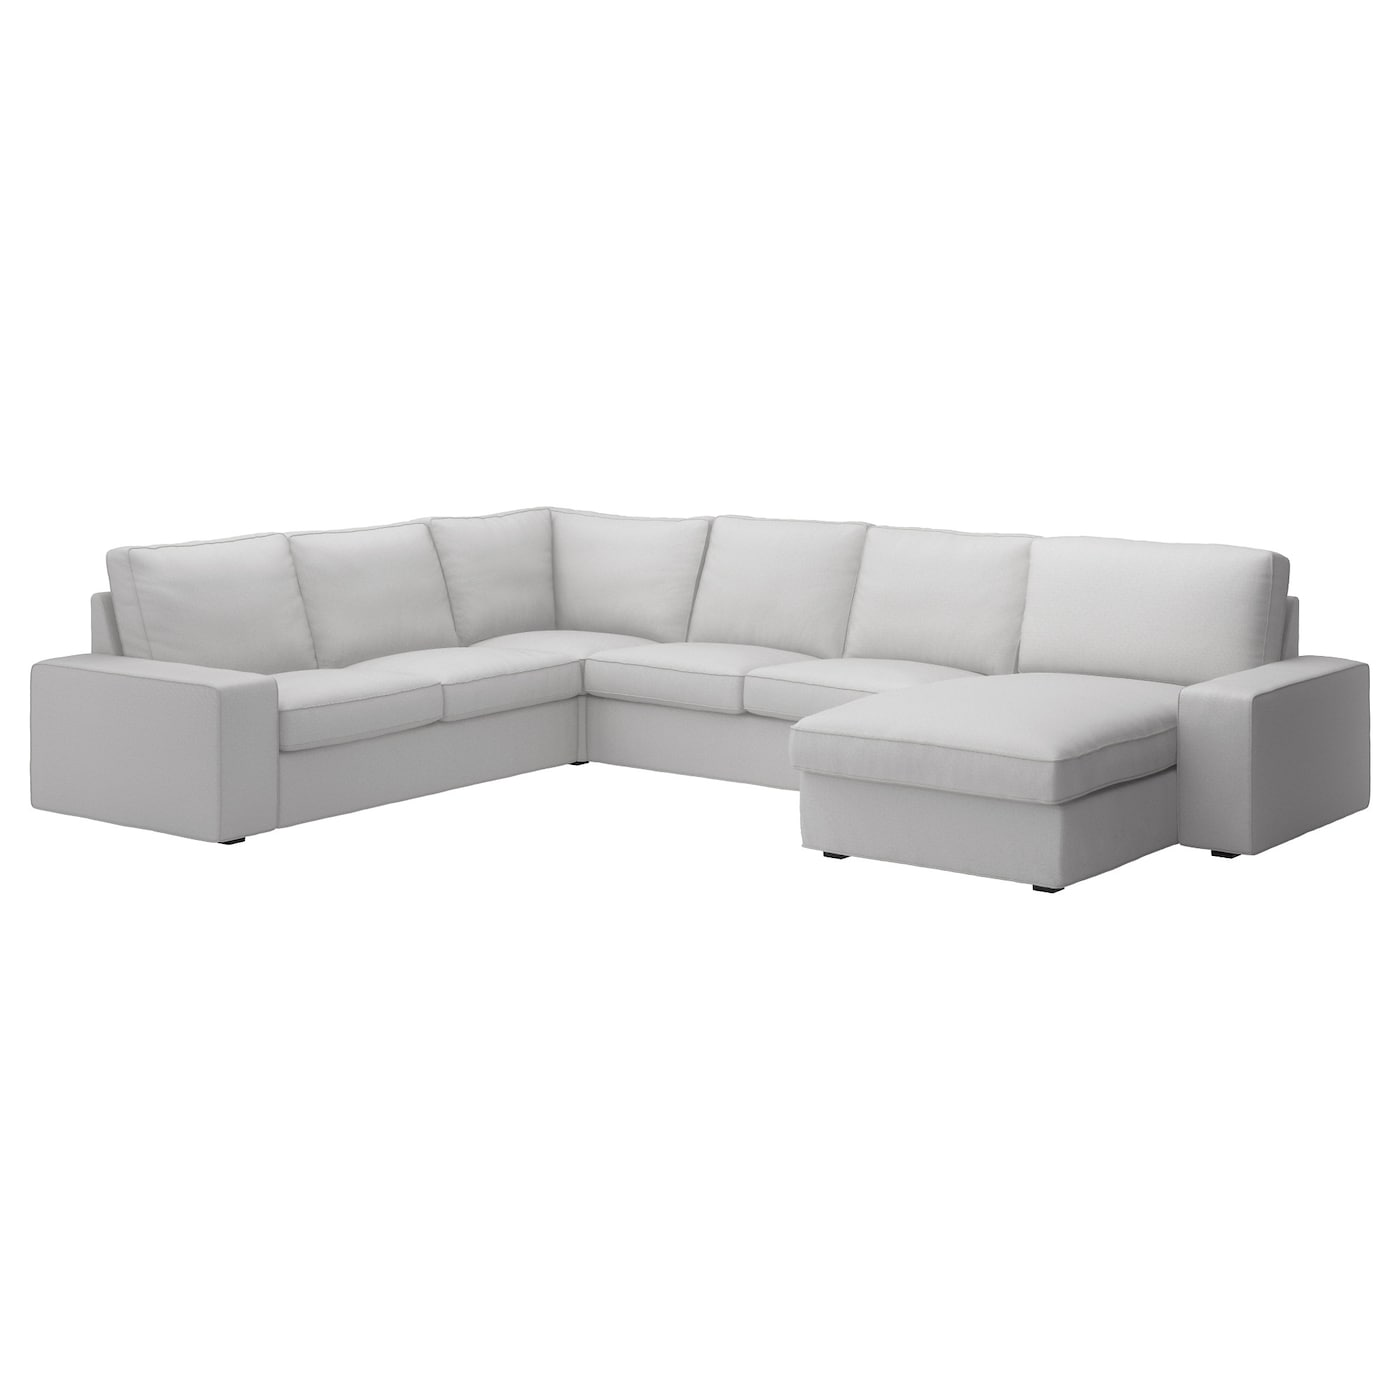 Kivik corner sofa 2 2 with chaise longue ramna light grey ikea - Chaise longue jardin ikea ...